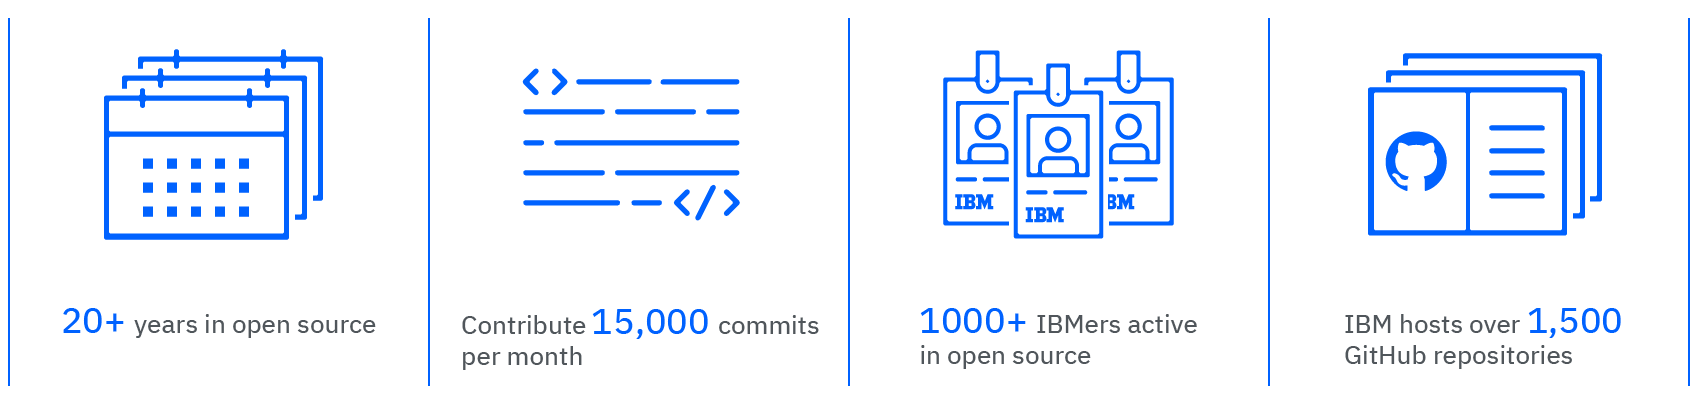 IBM open source stats at a glance